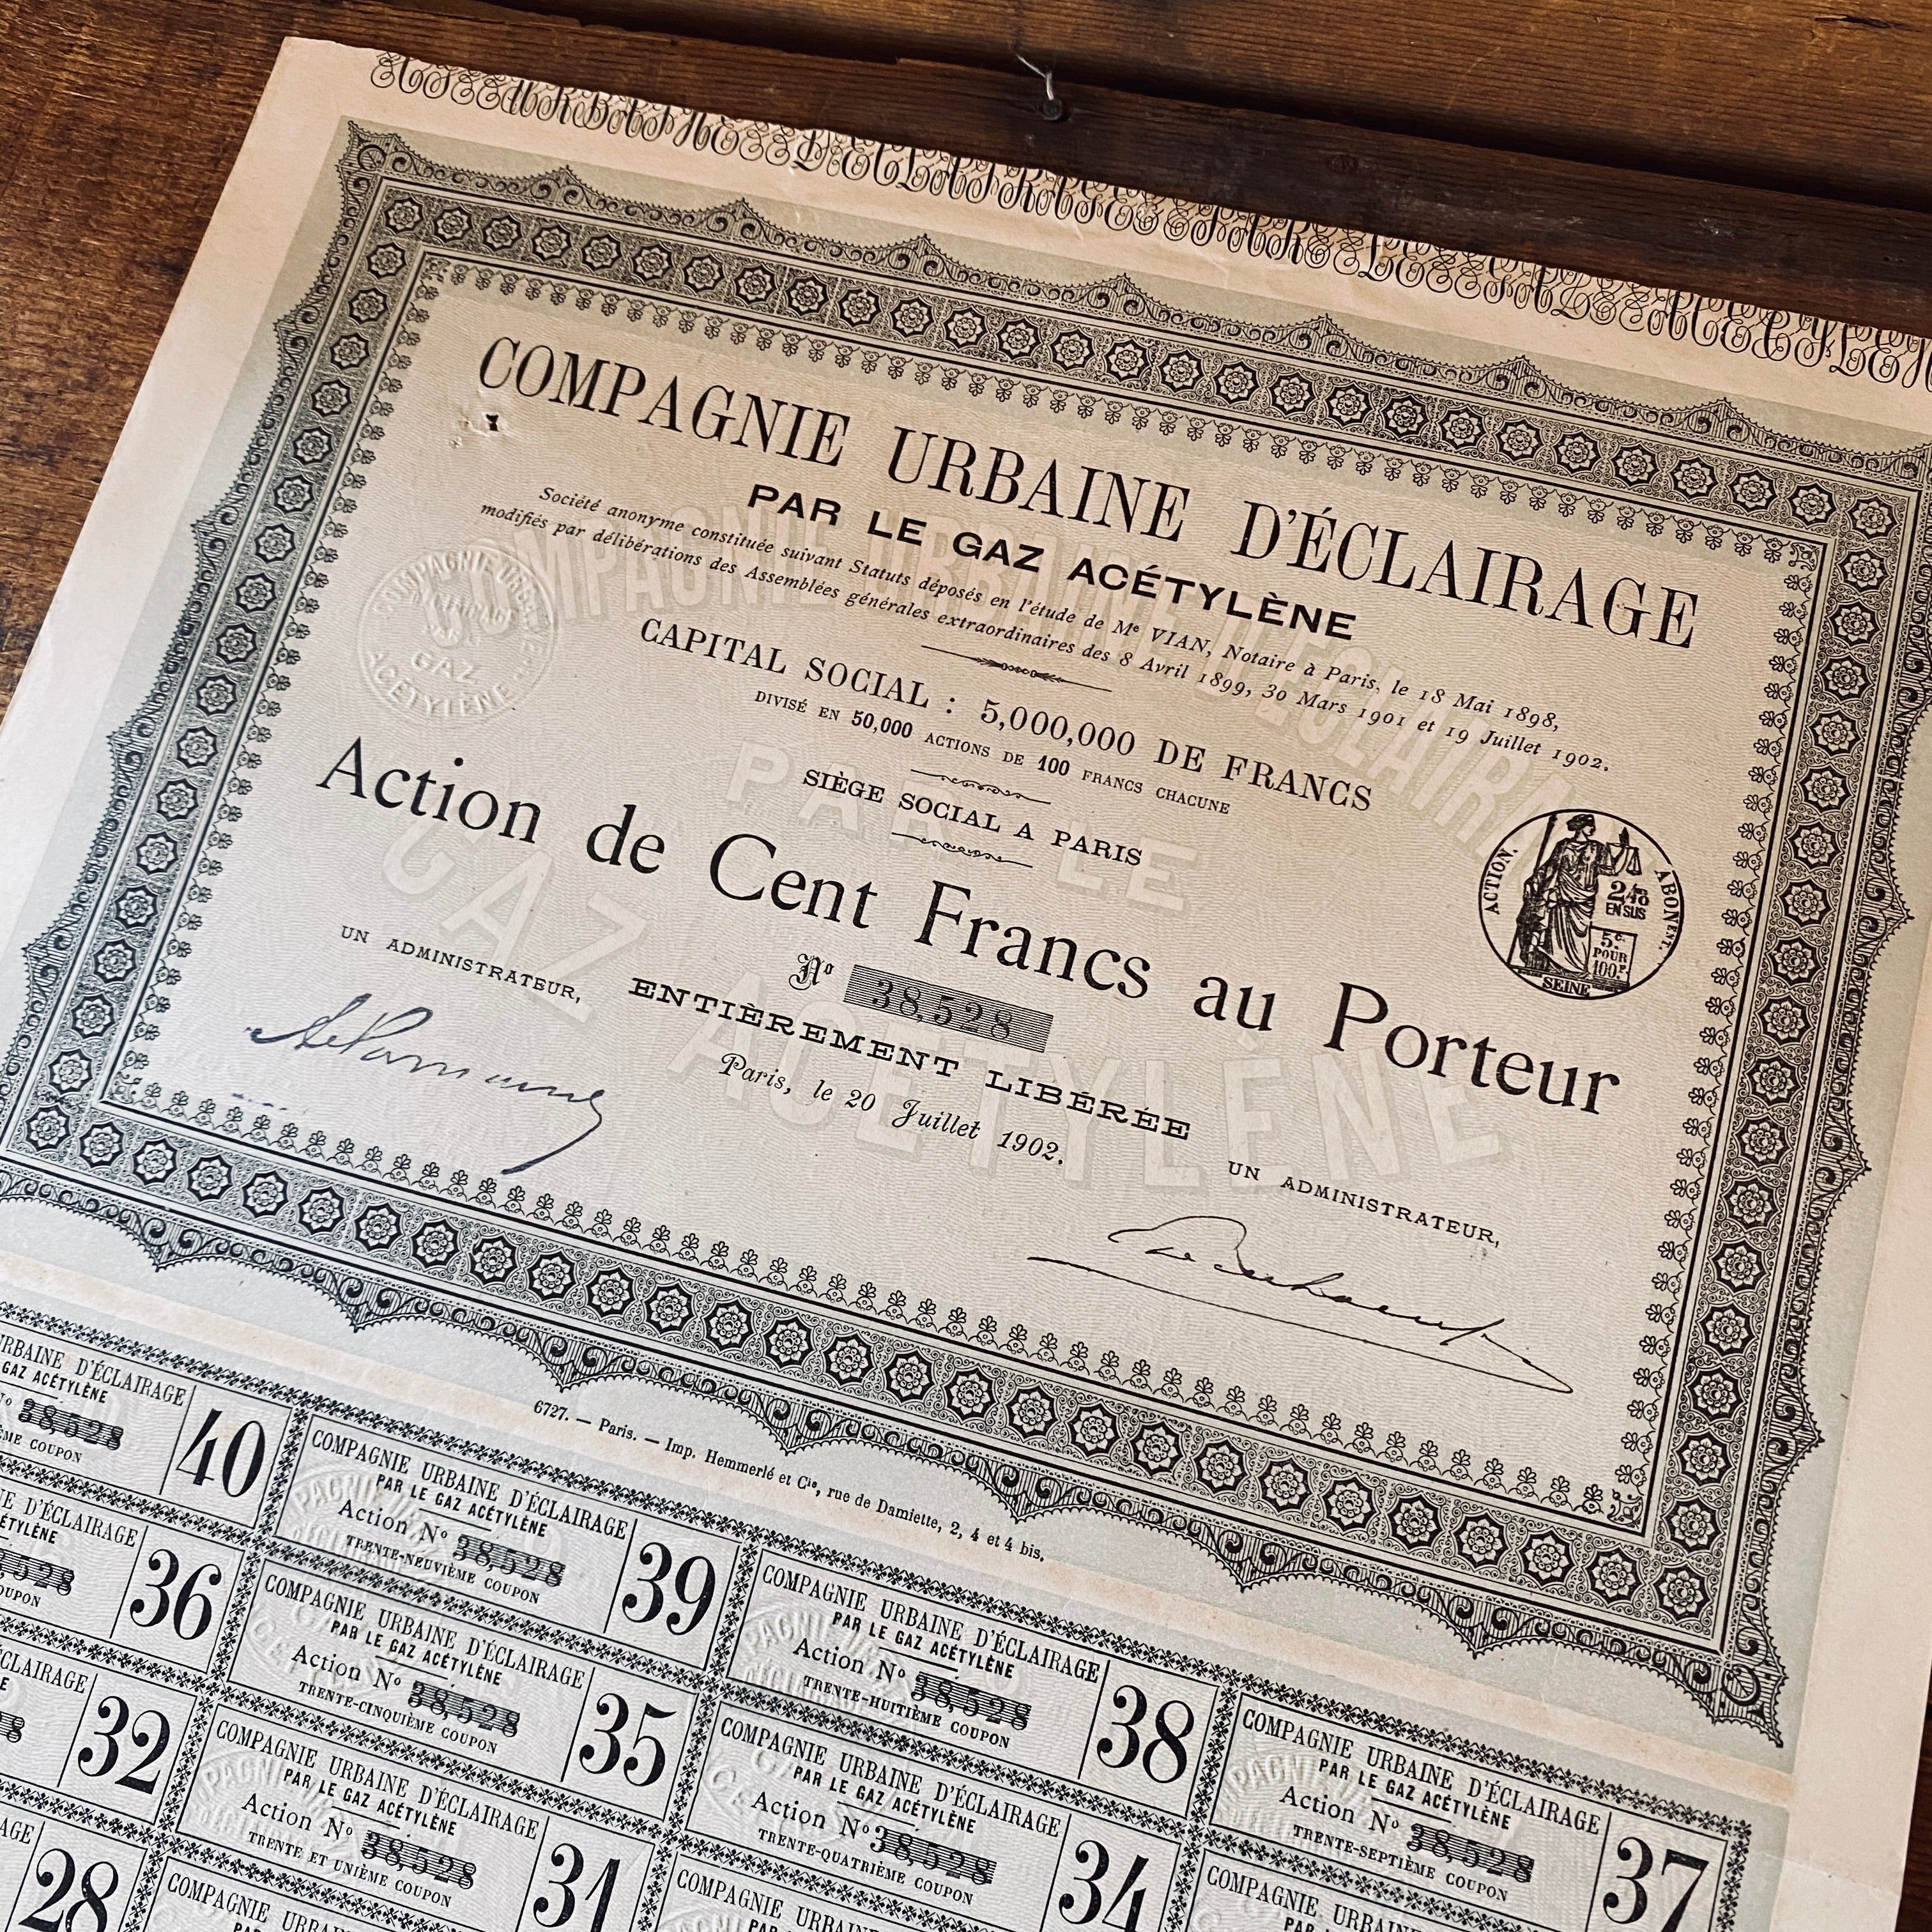 Compagnie urbaines deéclairage - Vintage share certificate - 1902